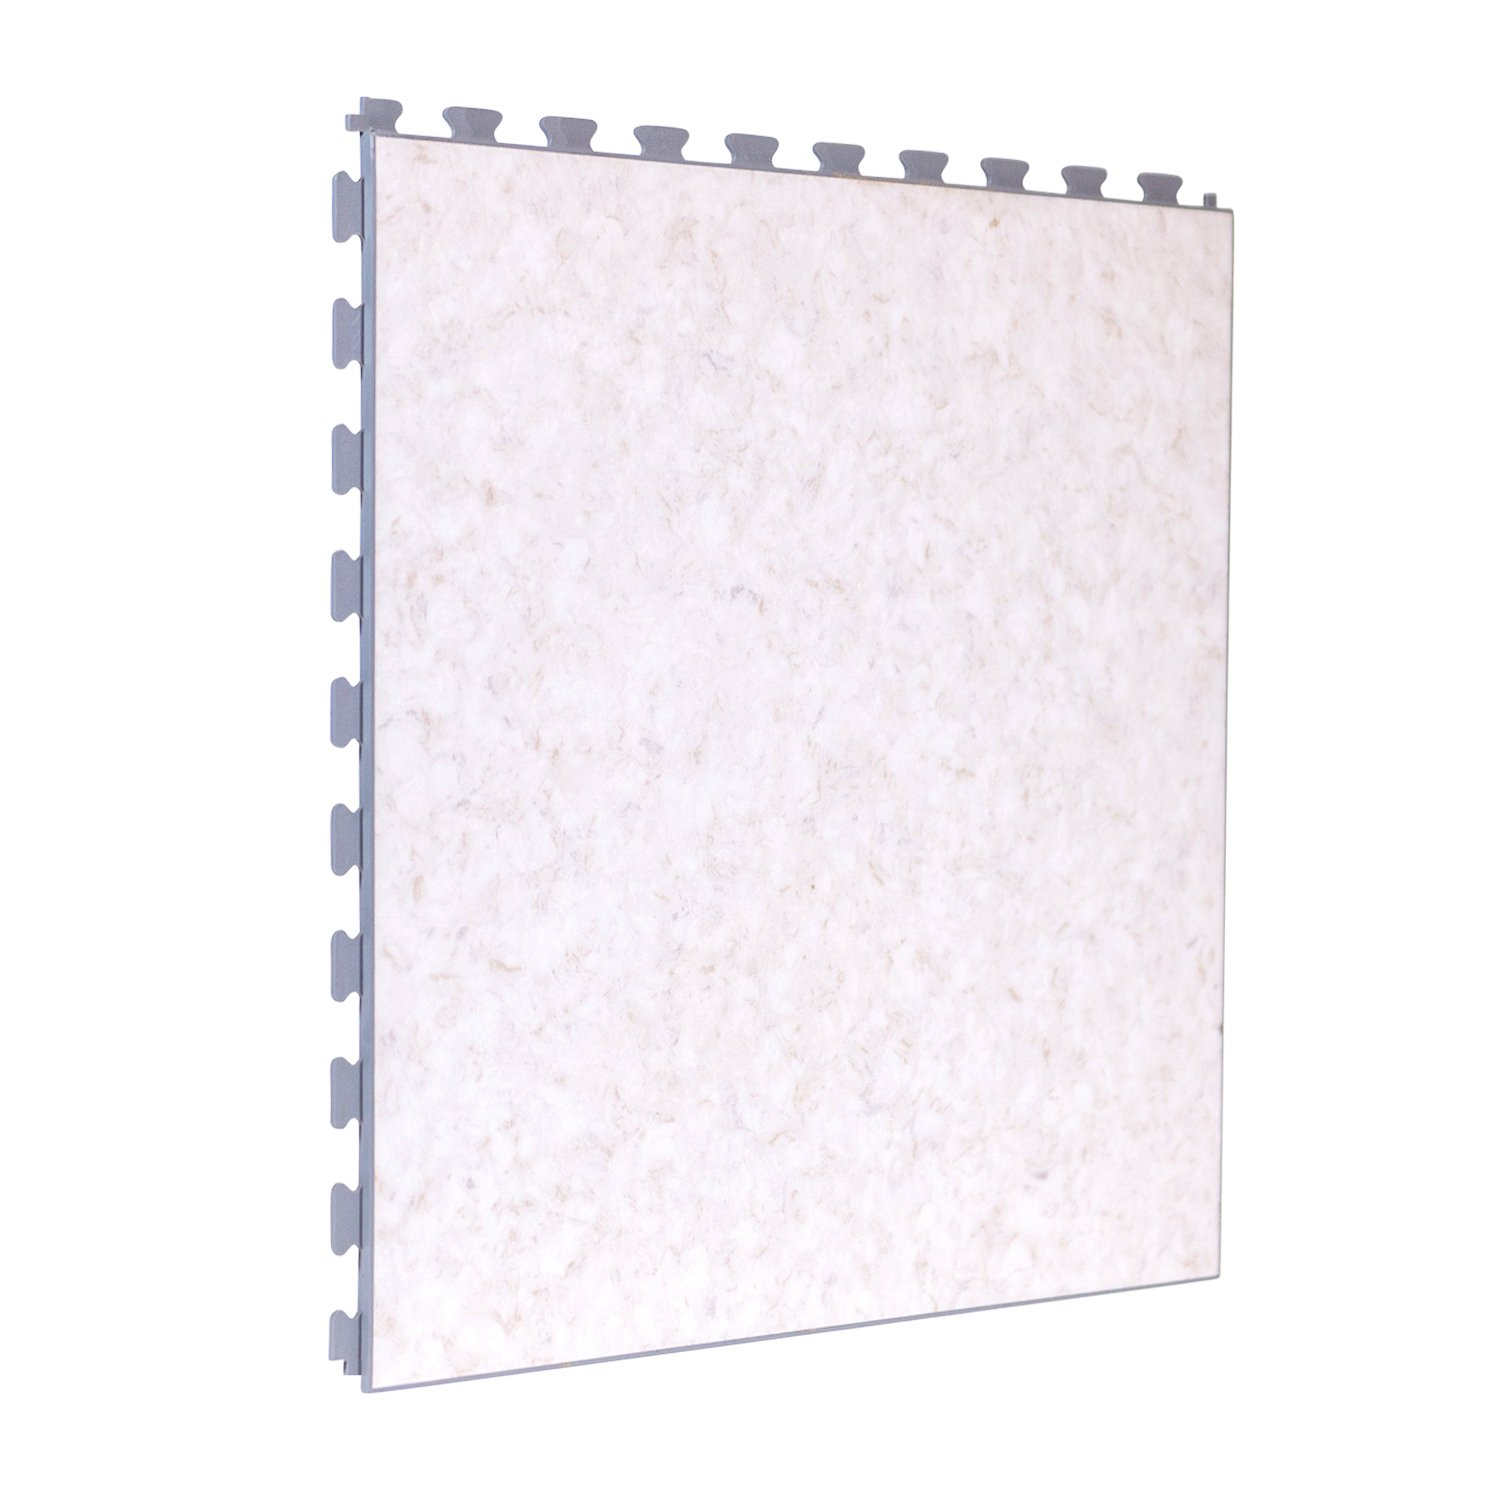 Luxury Vinyl Tile in Premium Limestone Finish with White Grout